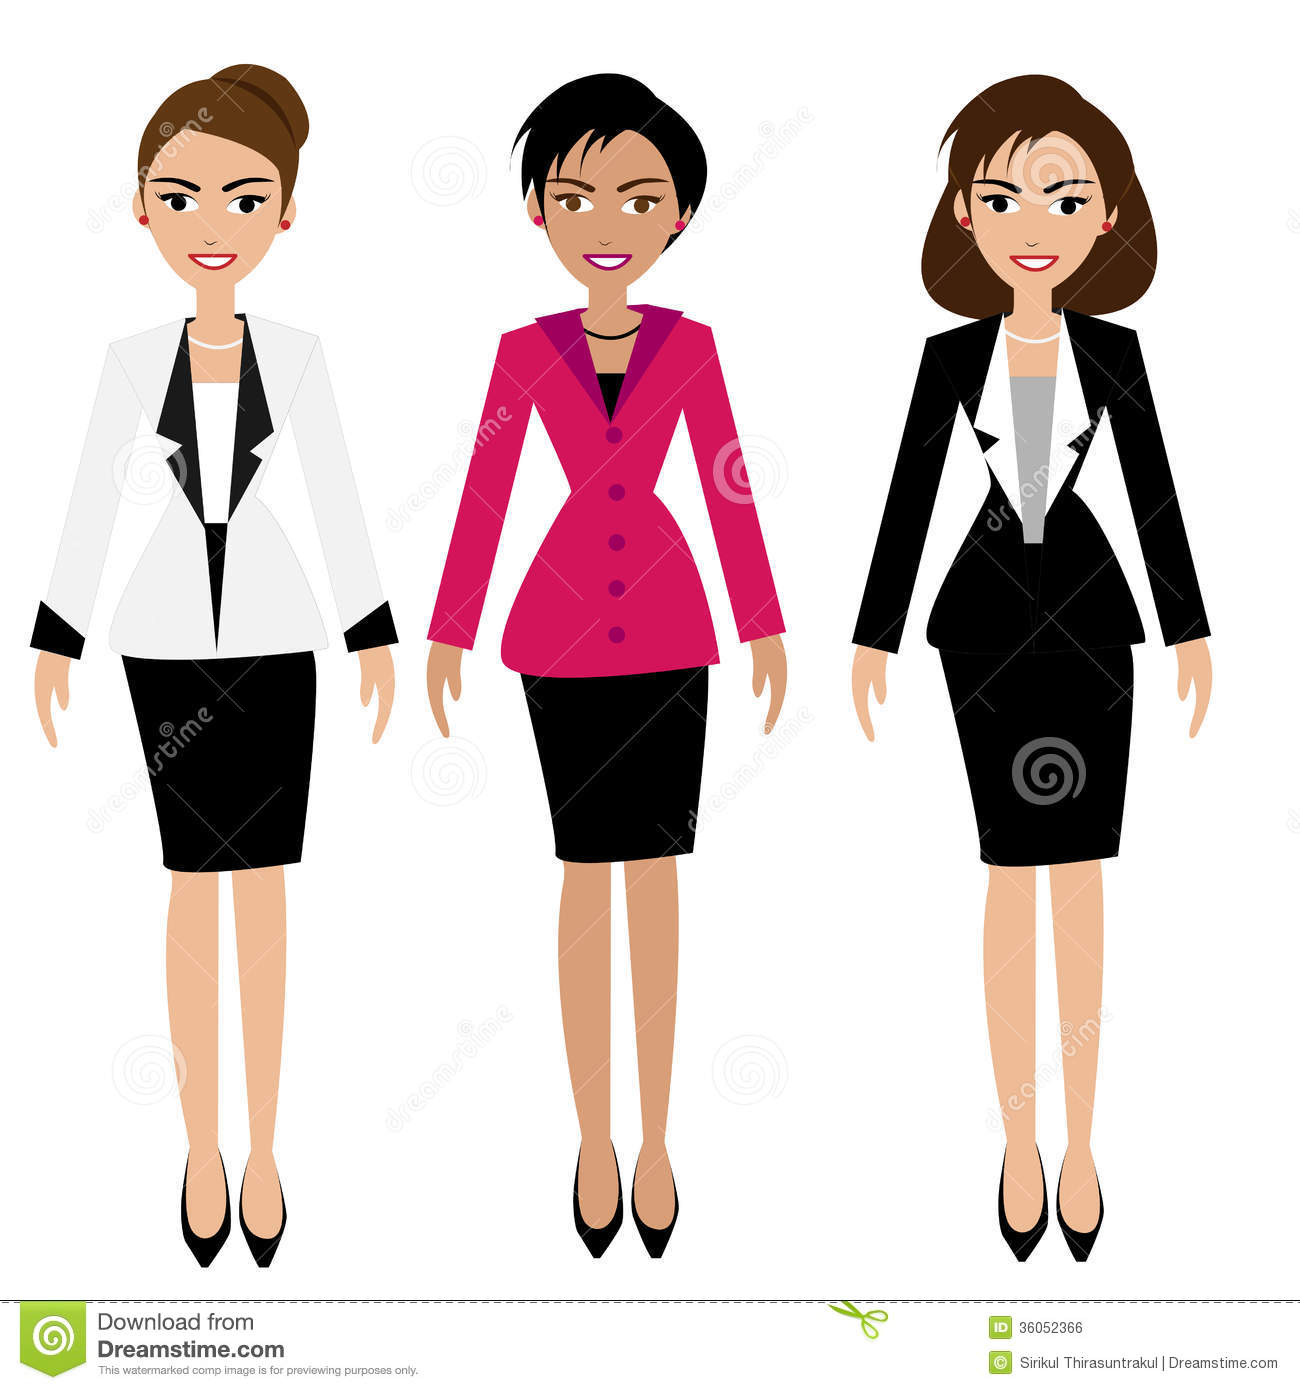 illustration-business-woman-set-using-creative-design-36052366.jpg